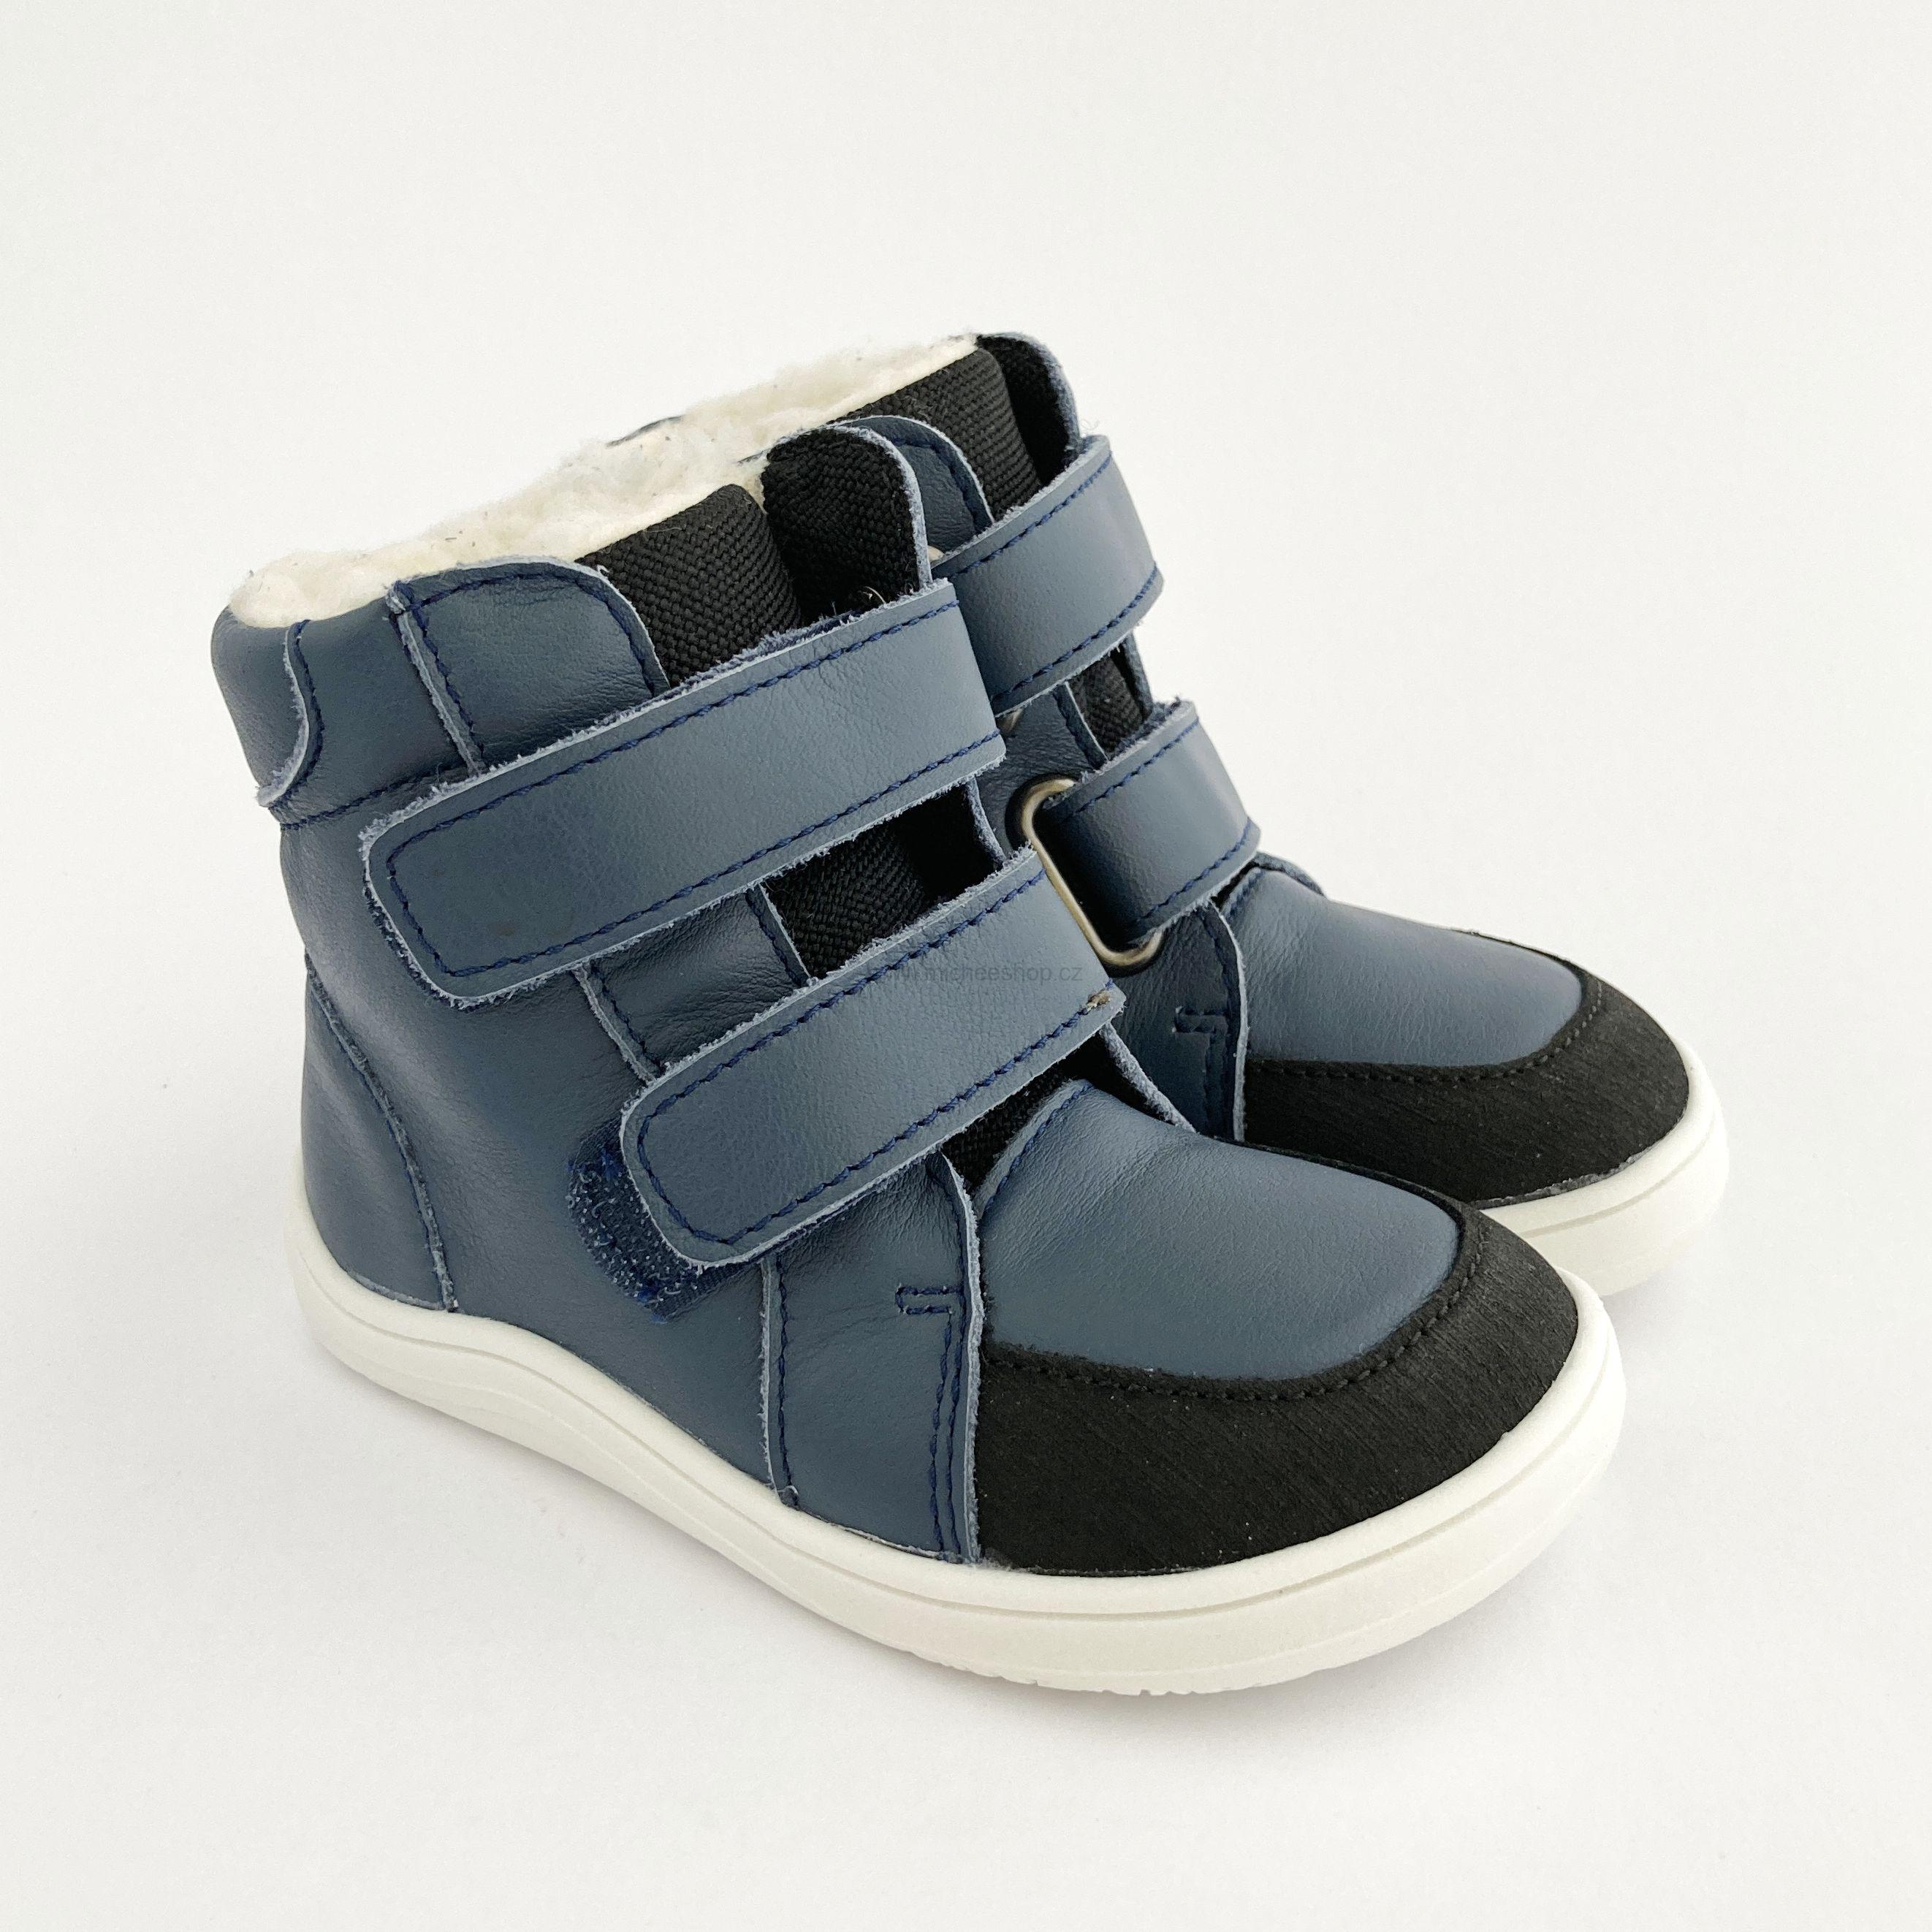 Baby Bare Shoes - Febo Winter Asfaltico - Navy